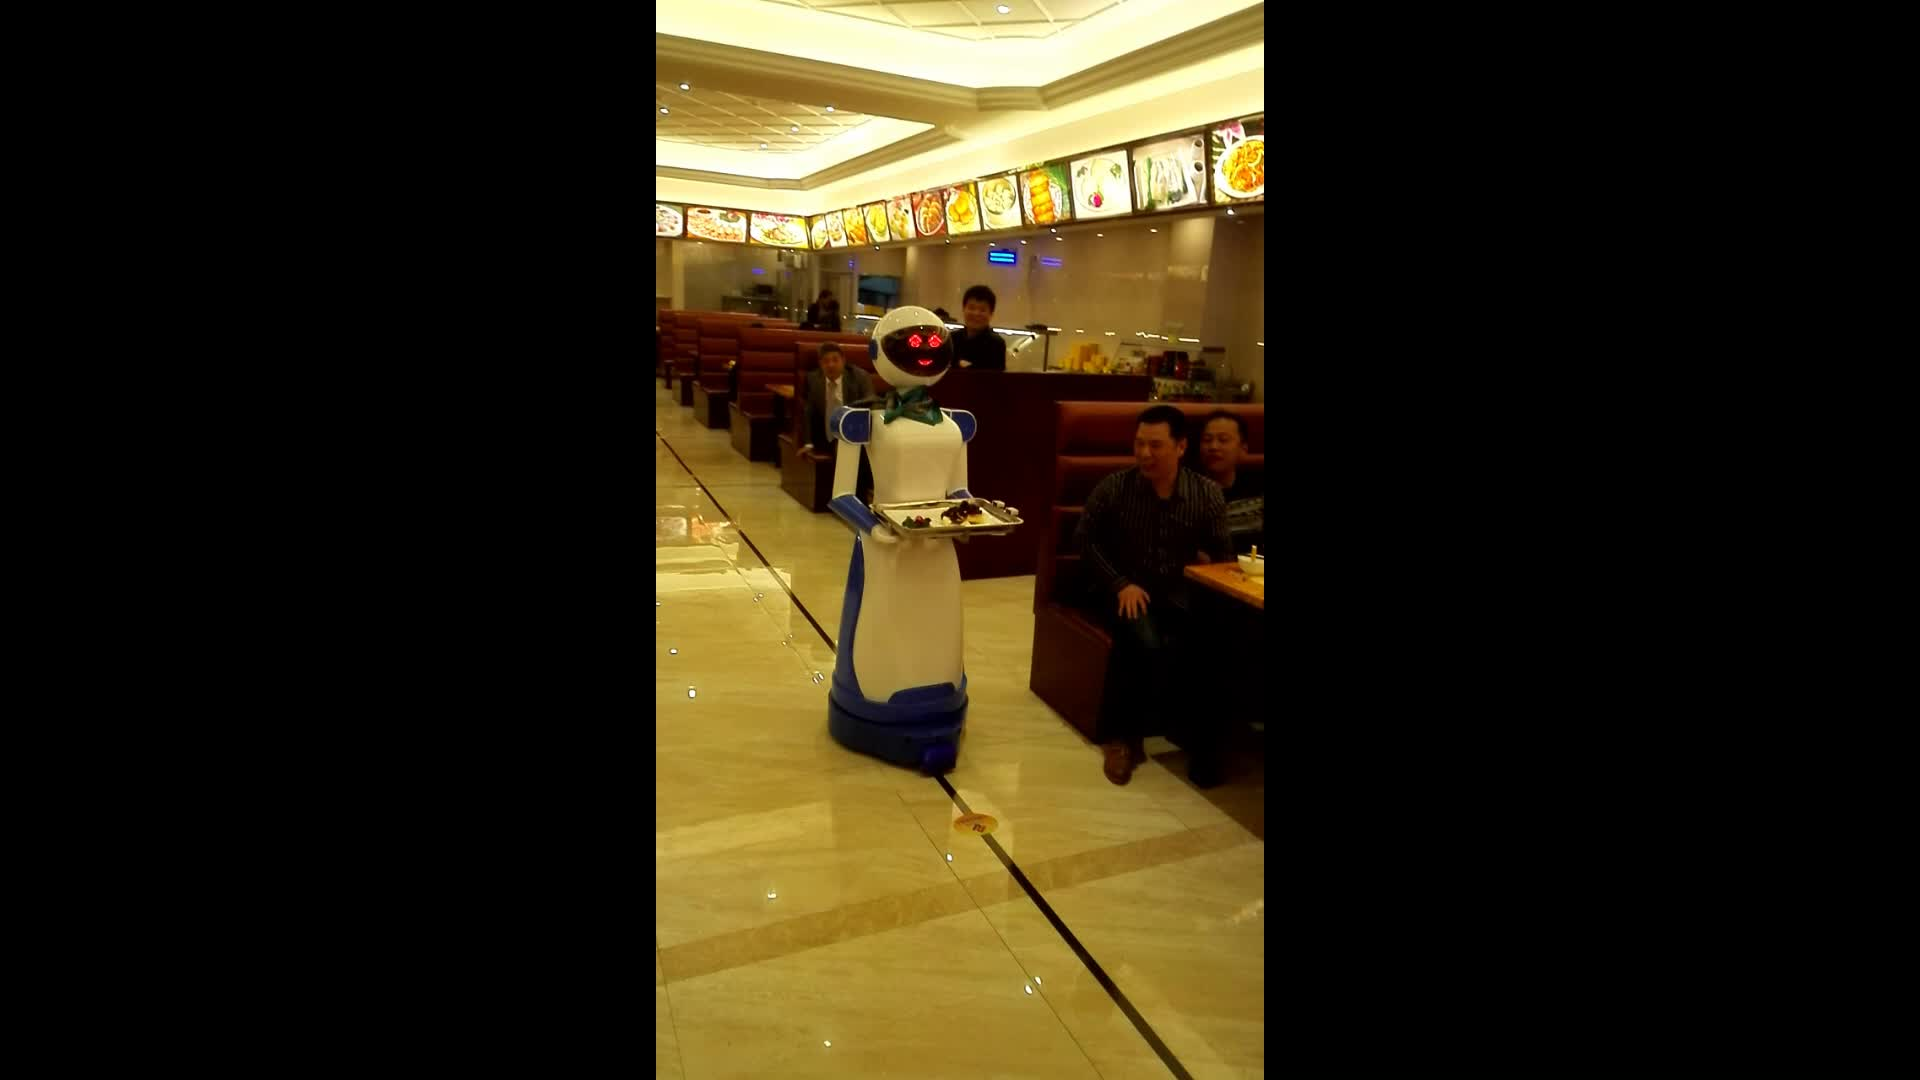 JHR 1rd Generation service robot waiter by megnatic trip to delievery food for restaurant